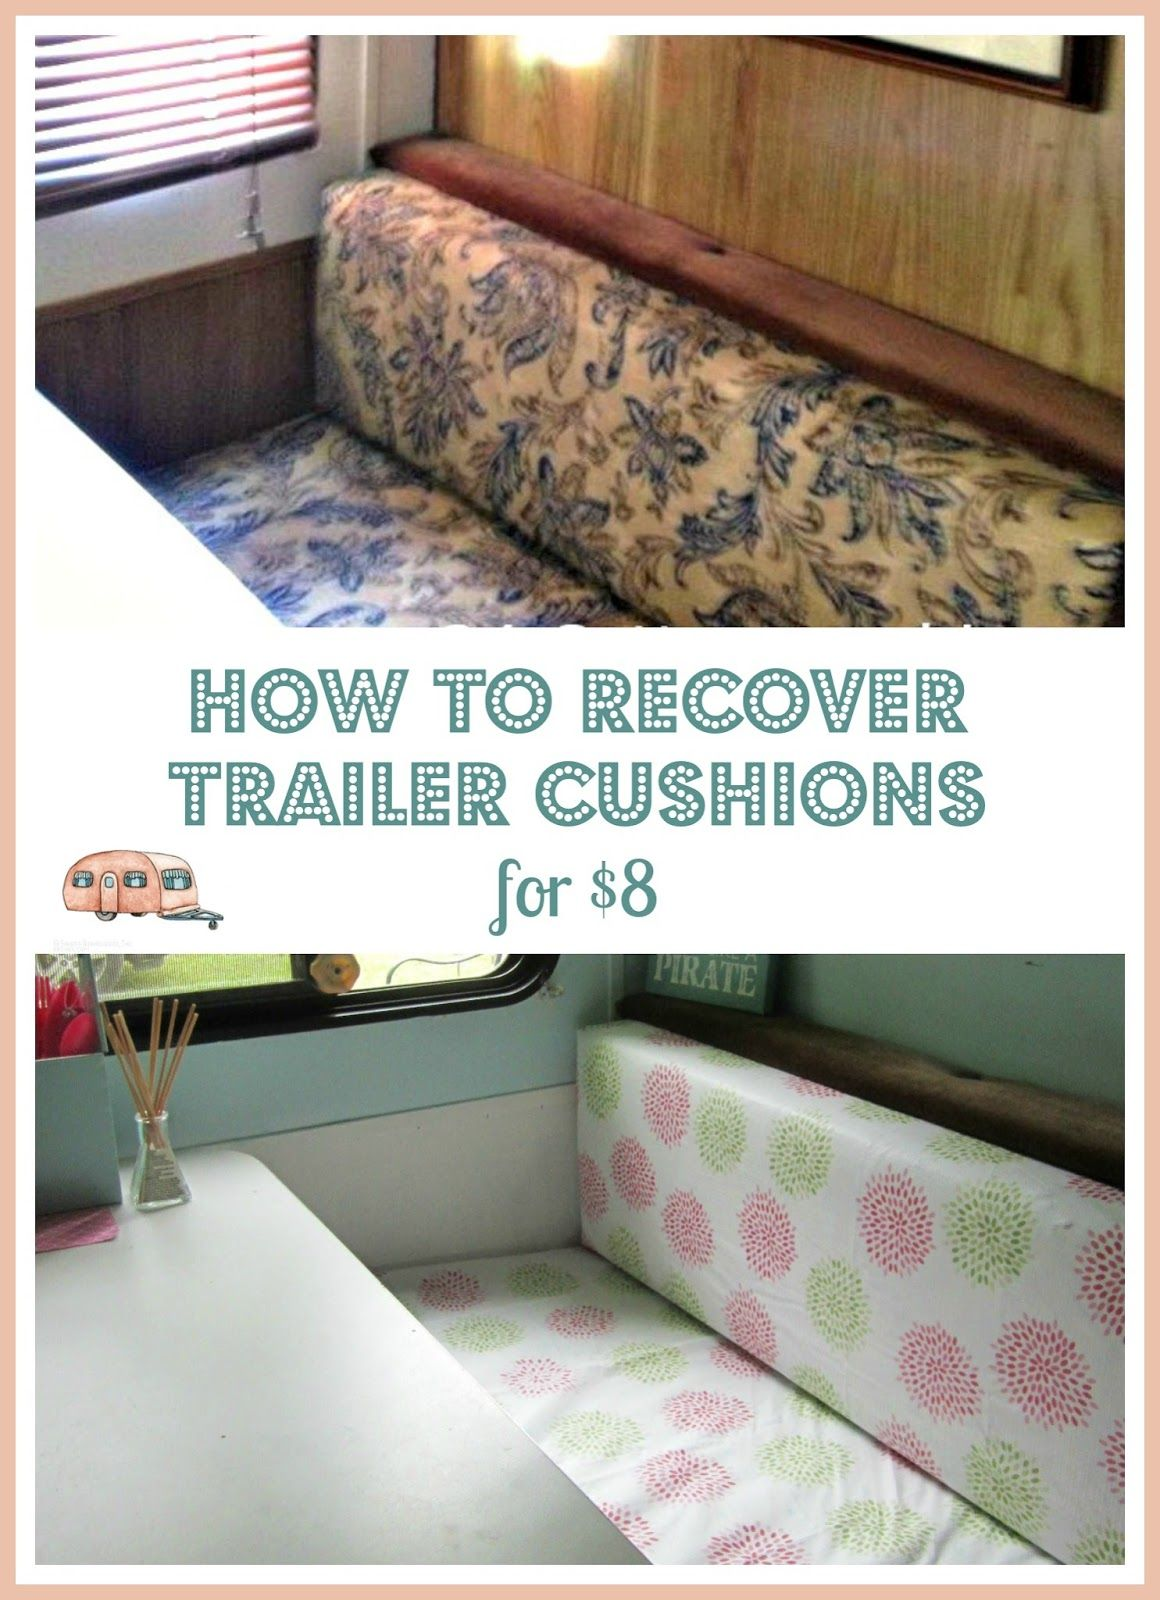 Glamping update 8 trailer cushion covers